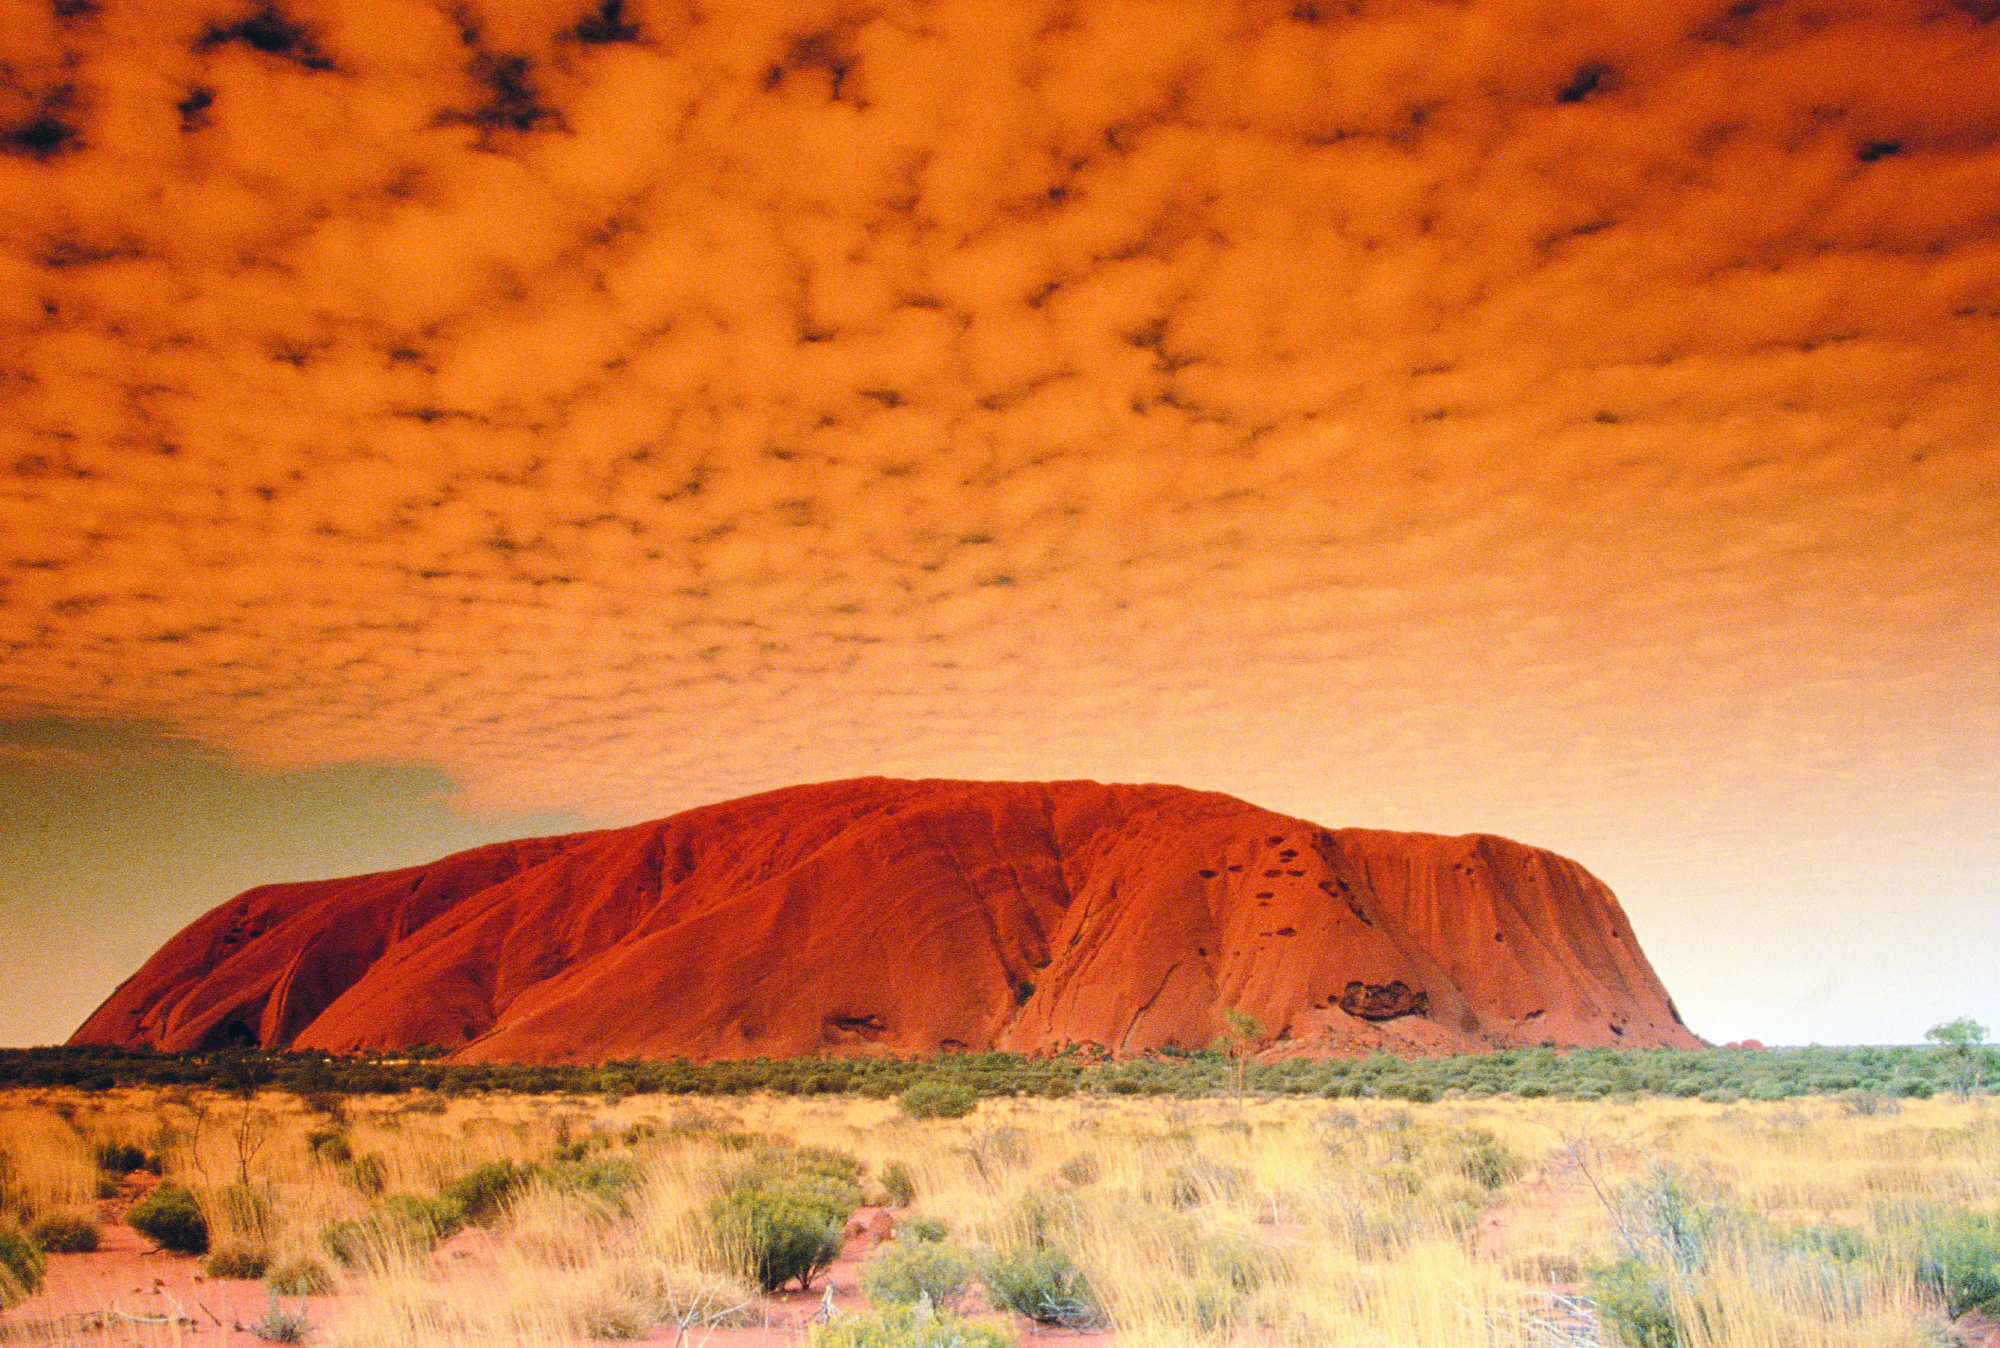 Outback Explorer | Uluru, Uluru-Kata Tjuta National Park, Central Australia, Northern Territory